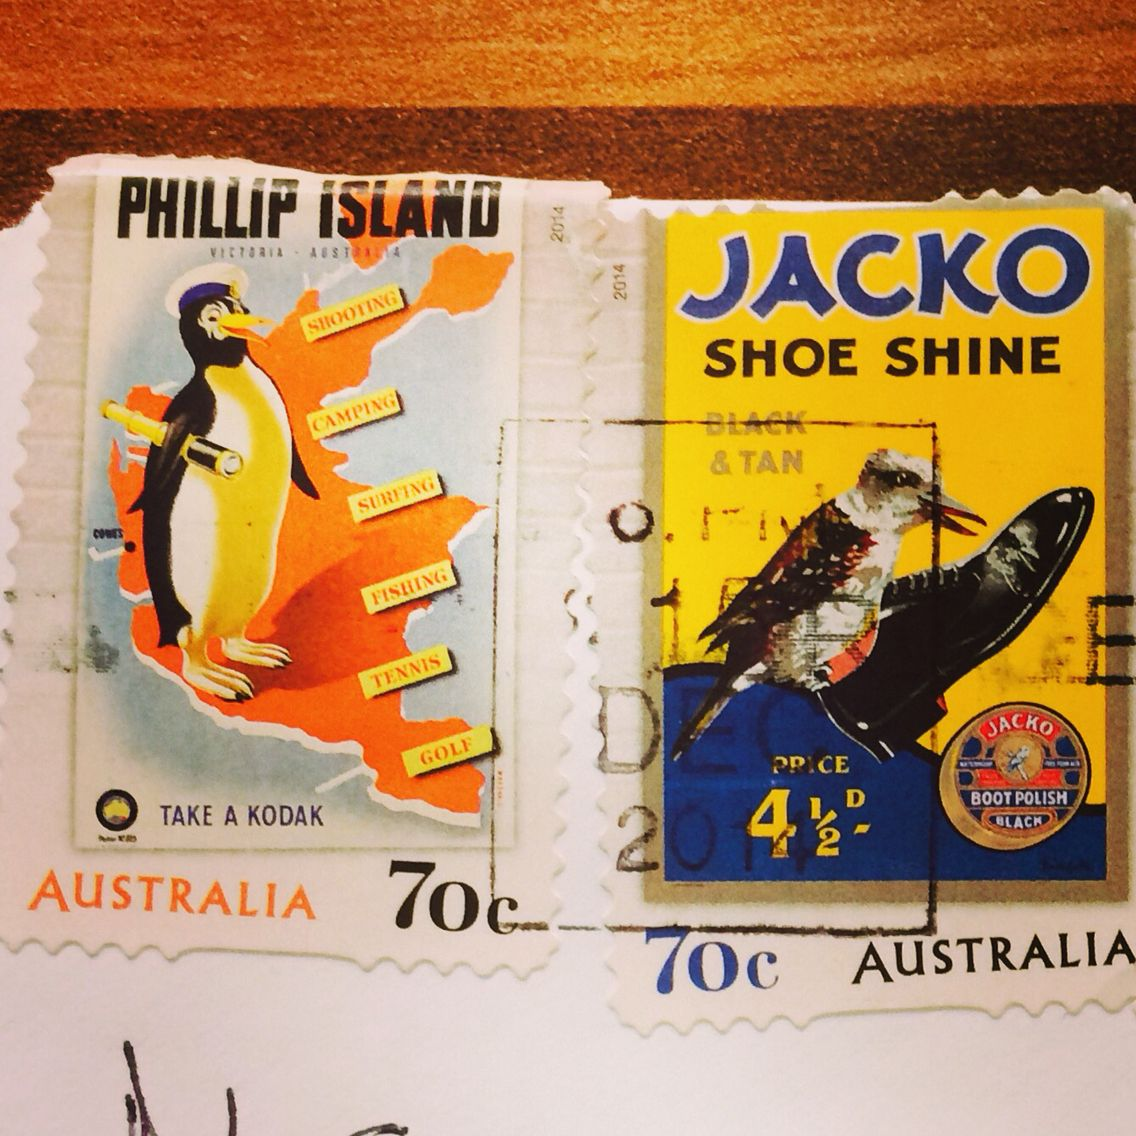 Good stamps from Oz!